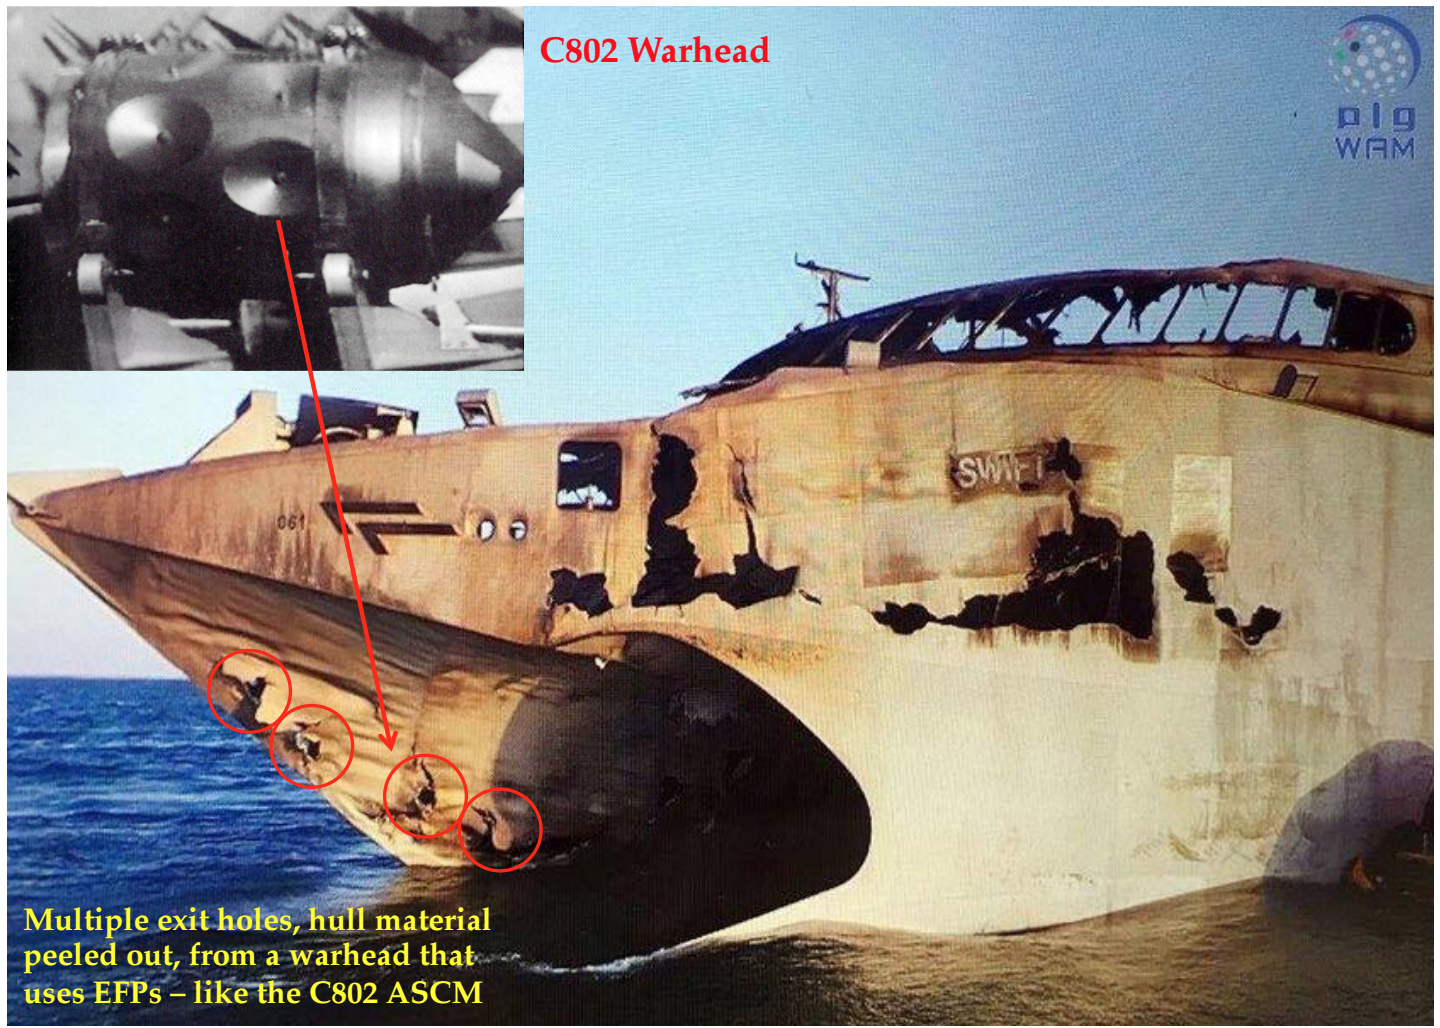 New Facts about Yemen Missile Attack on USS Mason: US Ship Fired 3 Missiles to Defend Itself